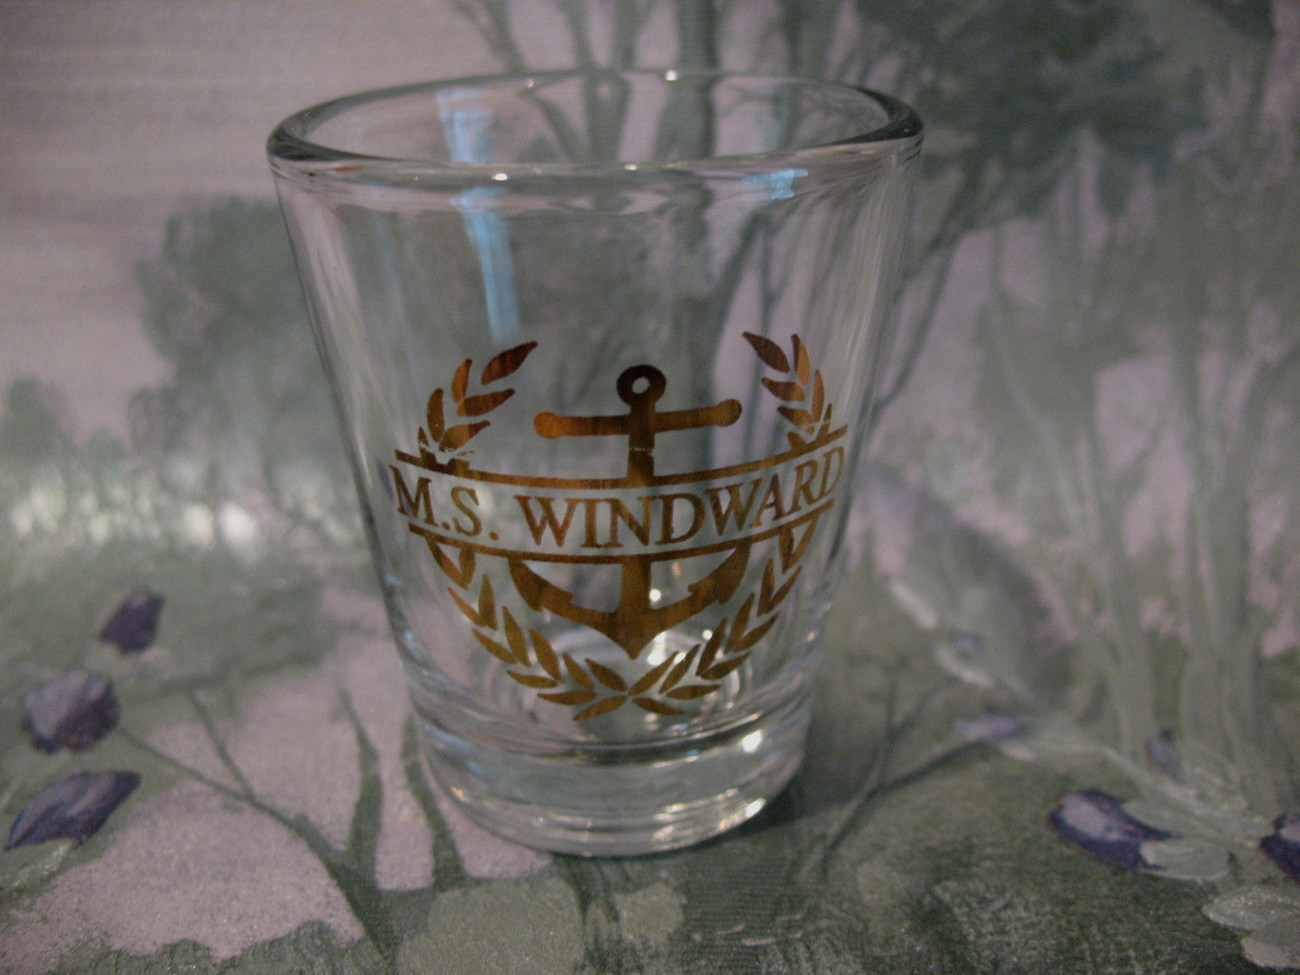 MS M.S. Windward Cruise Ship Souvenir Shot Glass